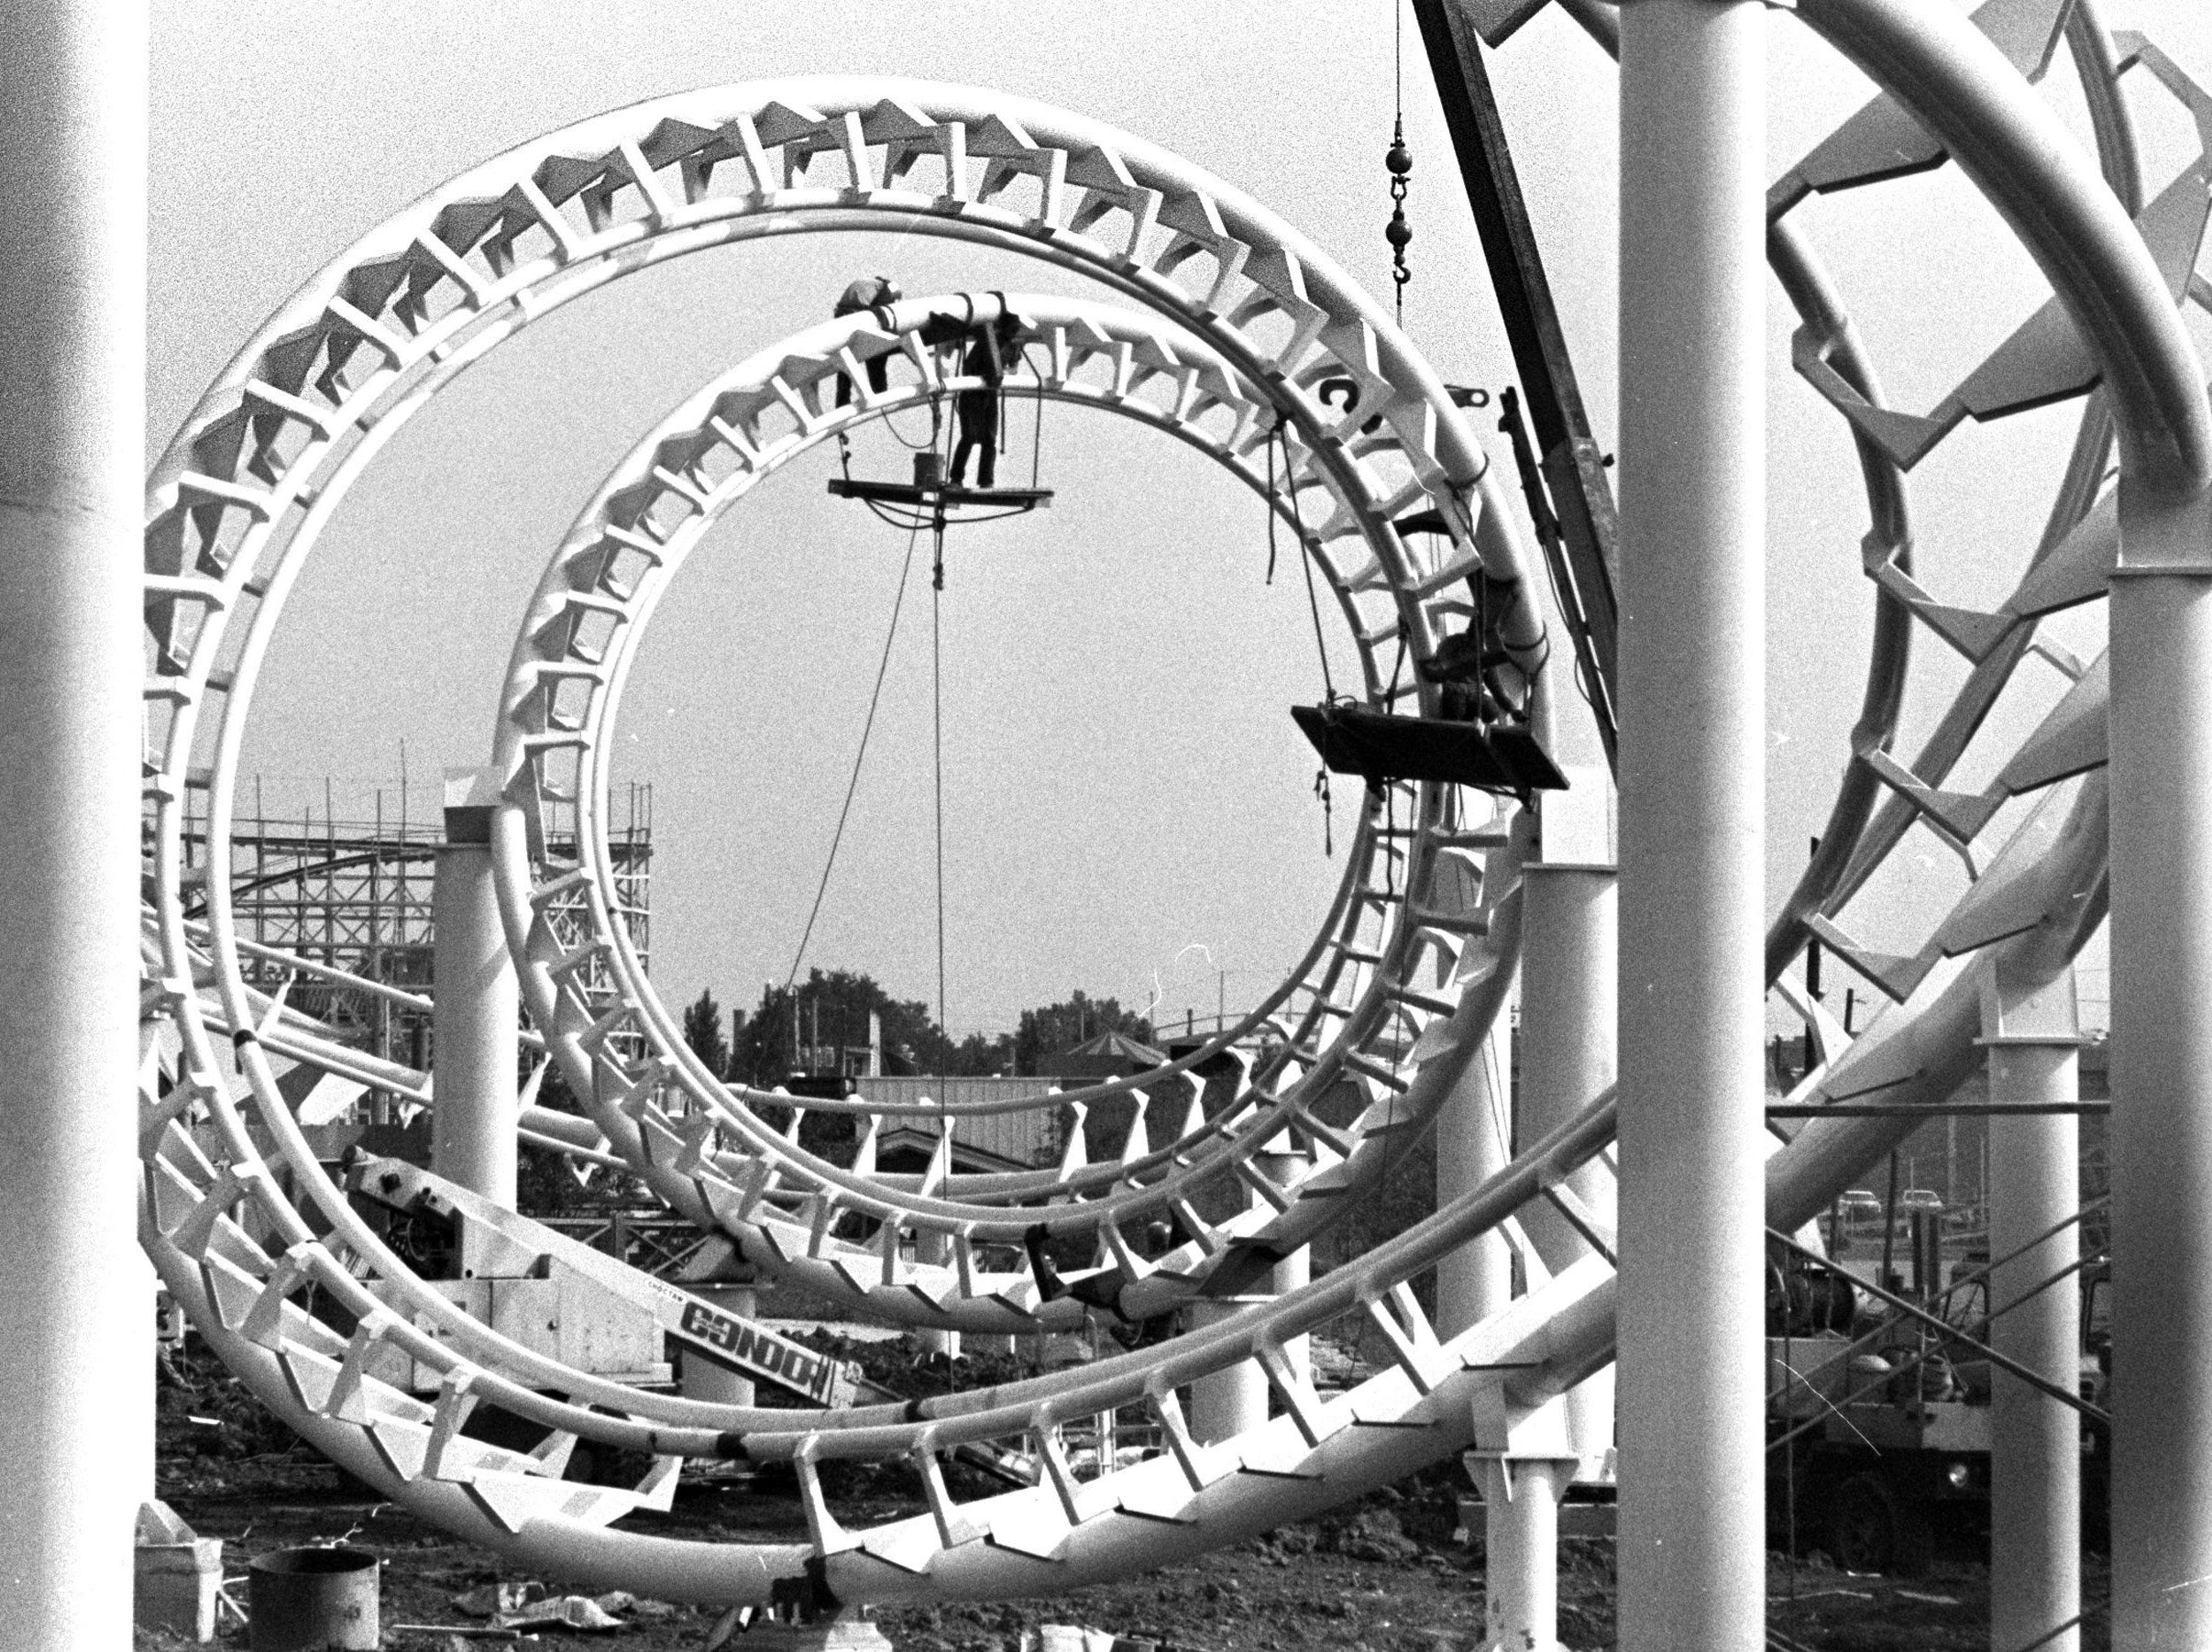 """Workmen have begun the monumental task of painting """"The Revolution"""", Libertyland's newest ride on 10 May 1979. Libertyland officials expect the $1.7-million loop-corkscrew ride to be in operation in about two weeks. The ride features a 360-degree loop that will turn its riders upside-down and a double corkscrew 'guarnateed to thrill' each of the 28 passengers the ride can carry per trip. The ride will last 80 seconds, travel over 1,565 feet of track and reach an altitude of 95 feet at the loop. It can accommodate about 1,000 persons an hour. Libertyland officials are calling the ride a """"white knuckle senses-scrambler."""" Fred J. Griffith / The Commercial Appeal files."""